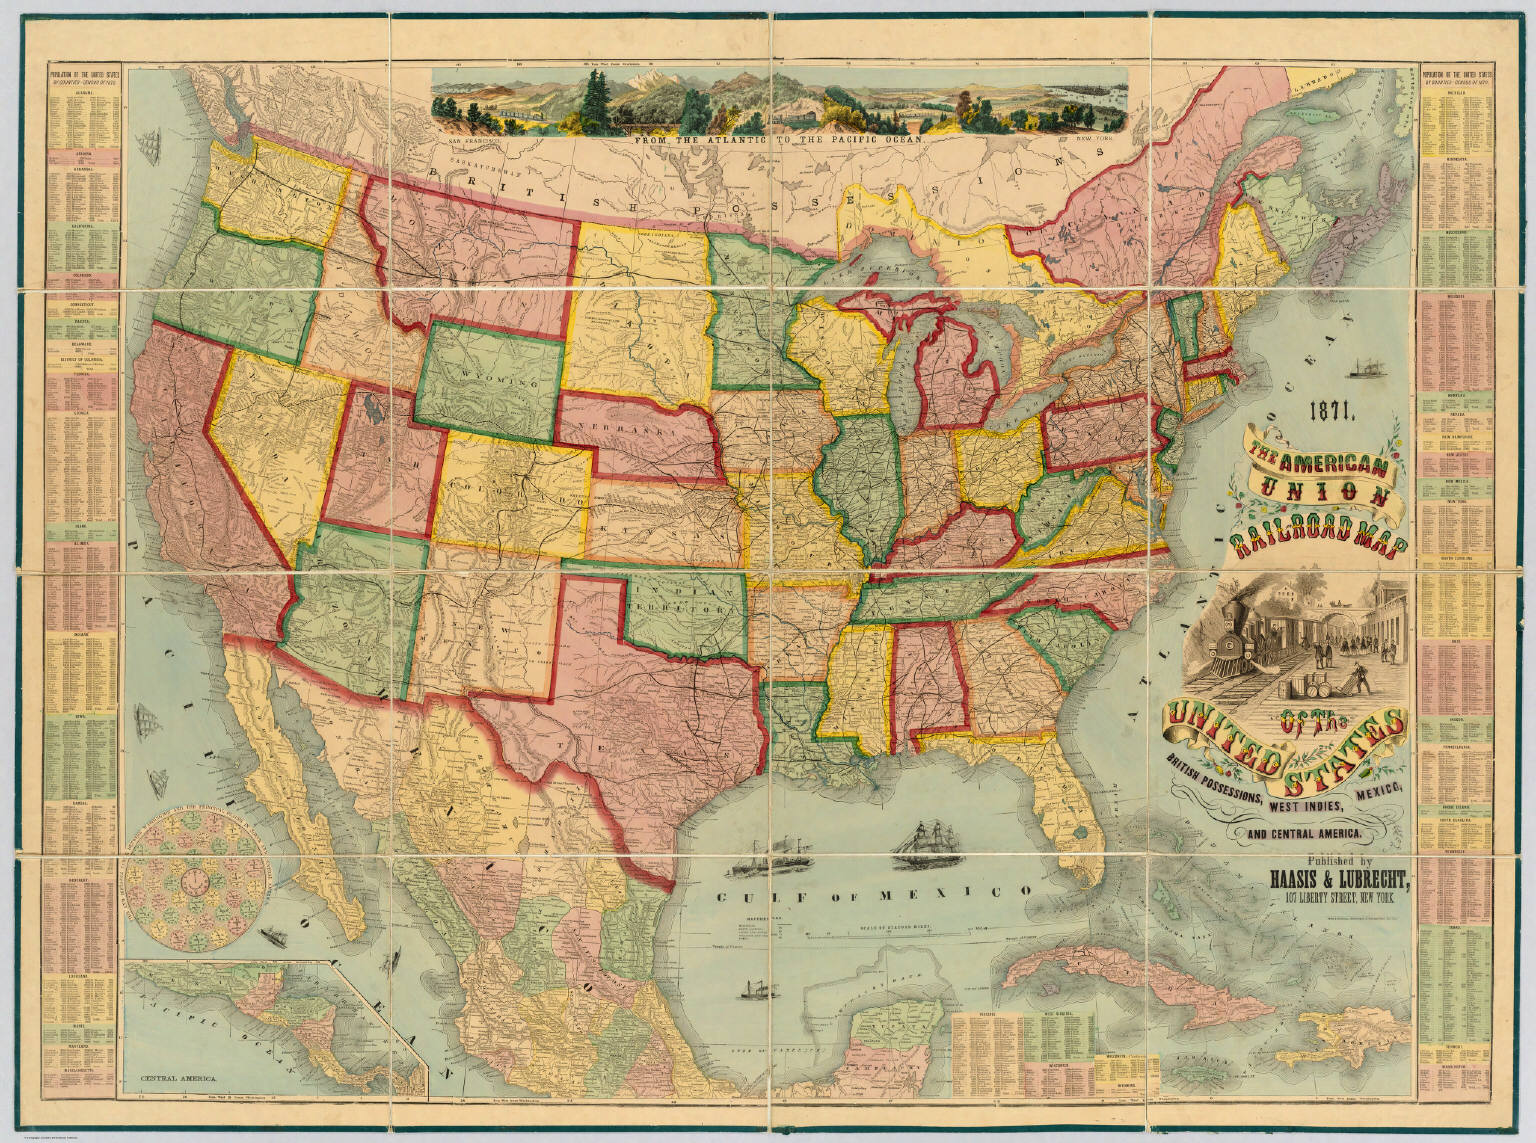 American Union Railroad Map Of The United States David Rumsey – Map Us Railroads